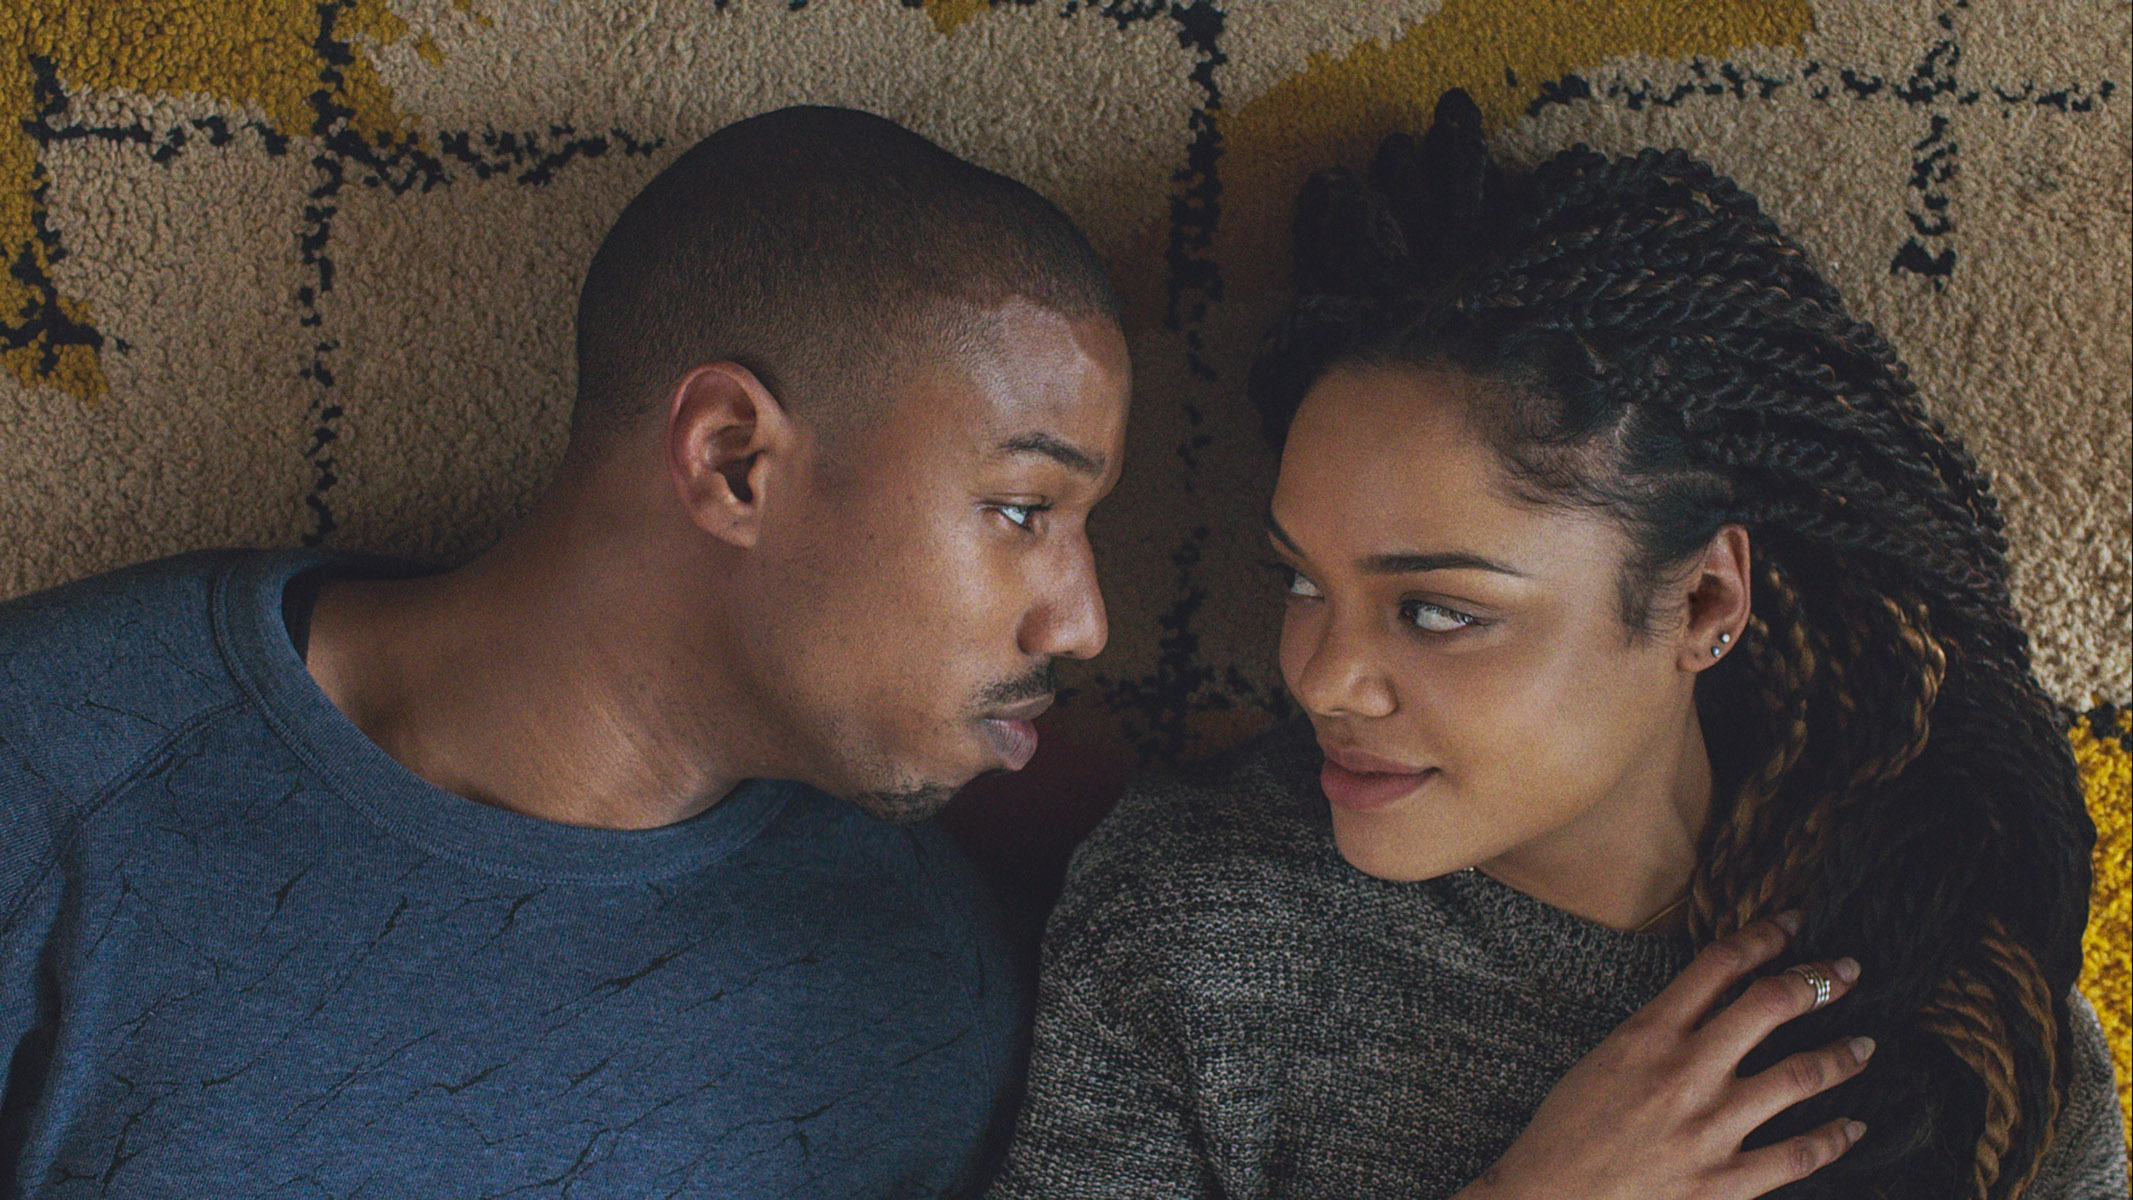 Tessa Thompson and Michael B. Jordan in Creed   Enthusiastic Consent: A Valentine's Day Watchlist   onecriticalbitch.com